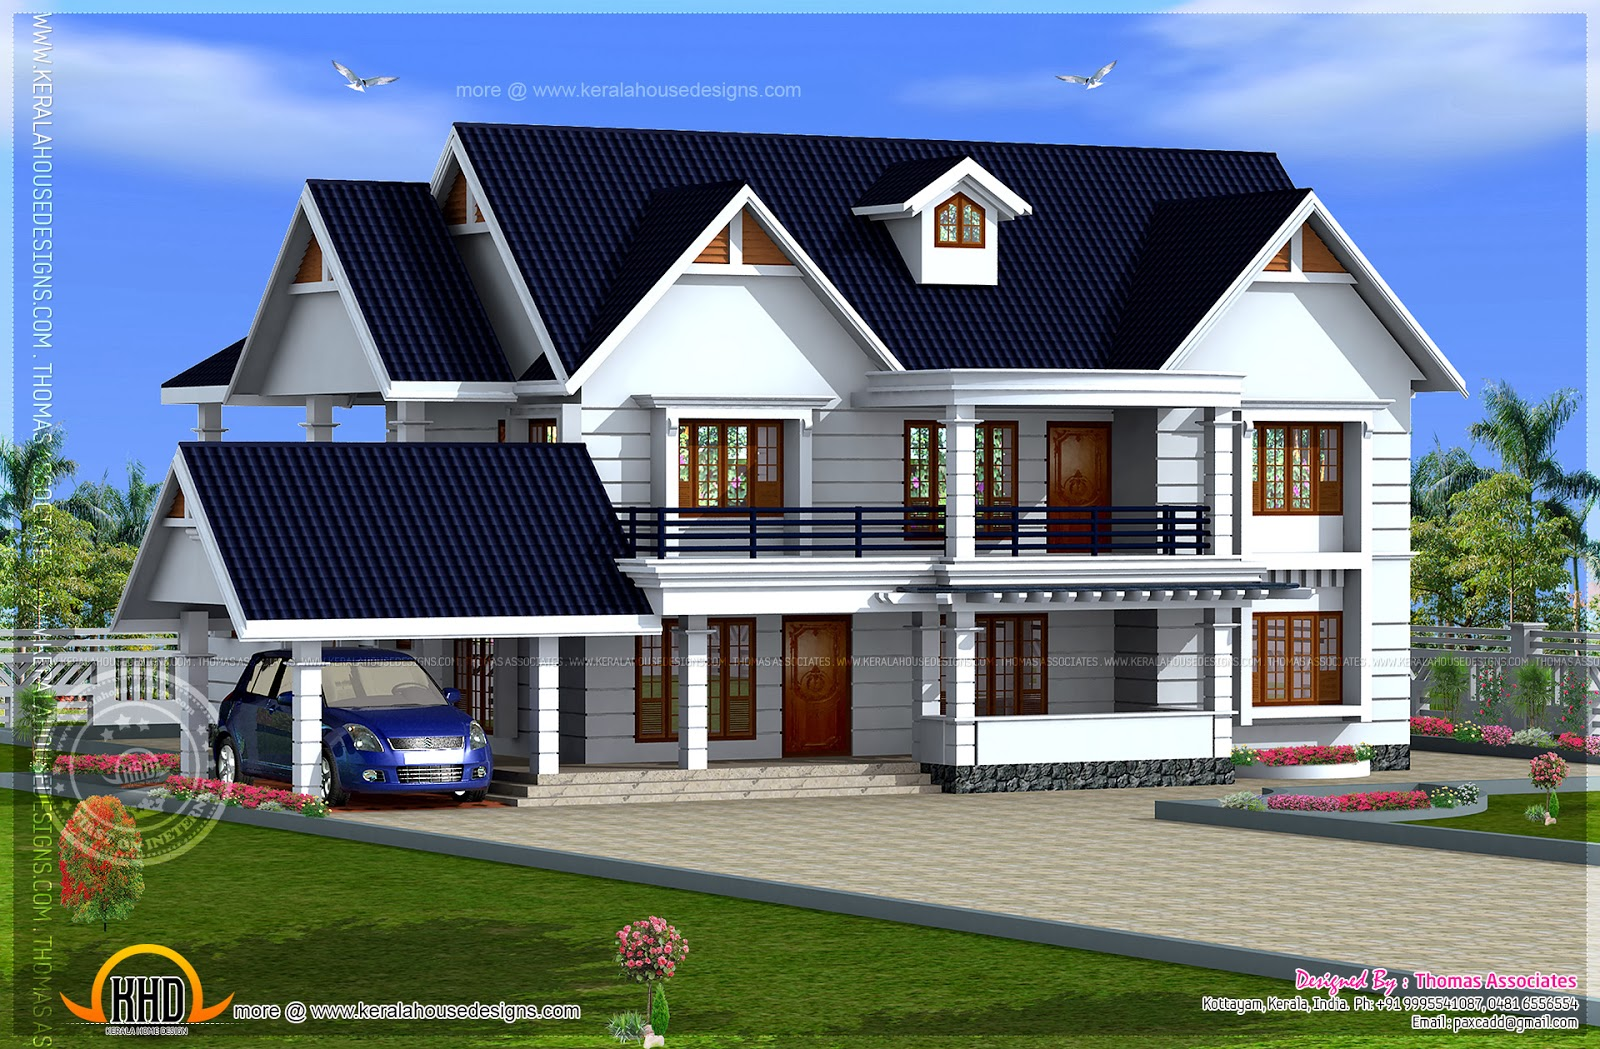 Luxury Residence Design In 3500 Square Feet Kerala Home